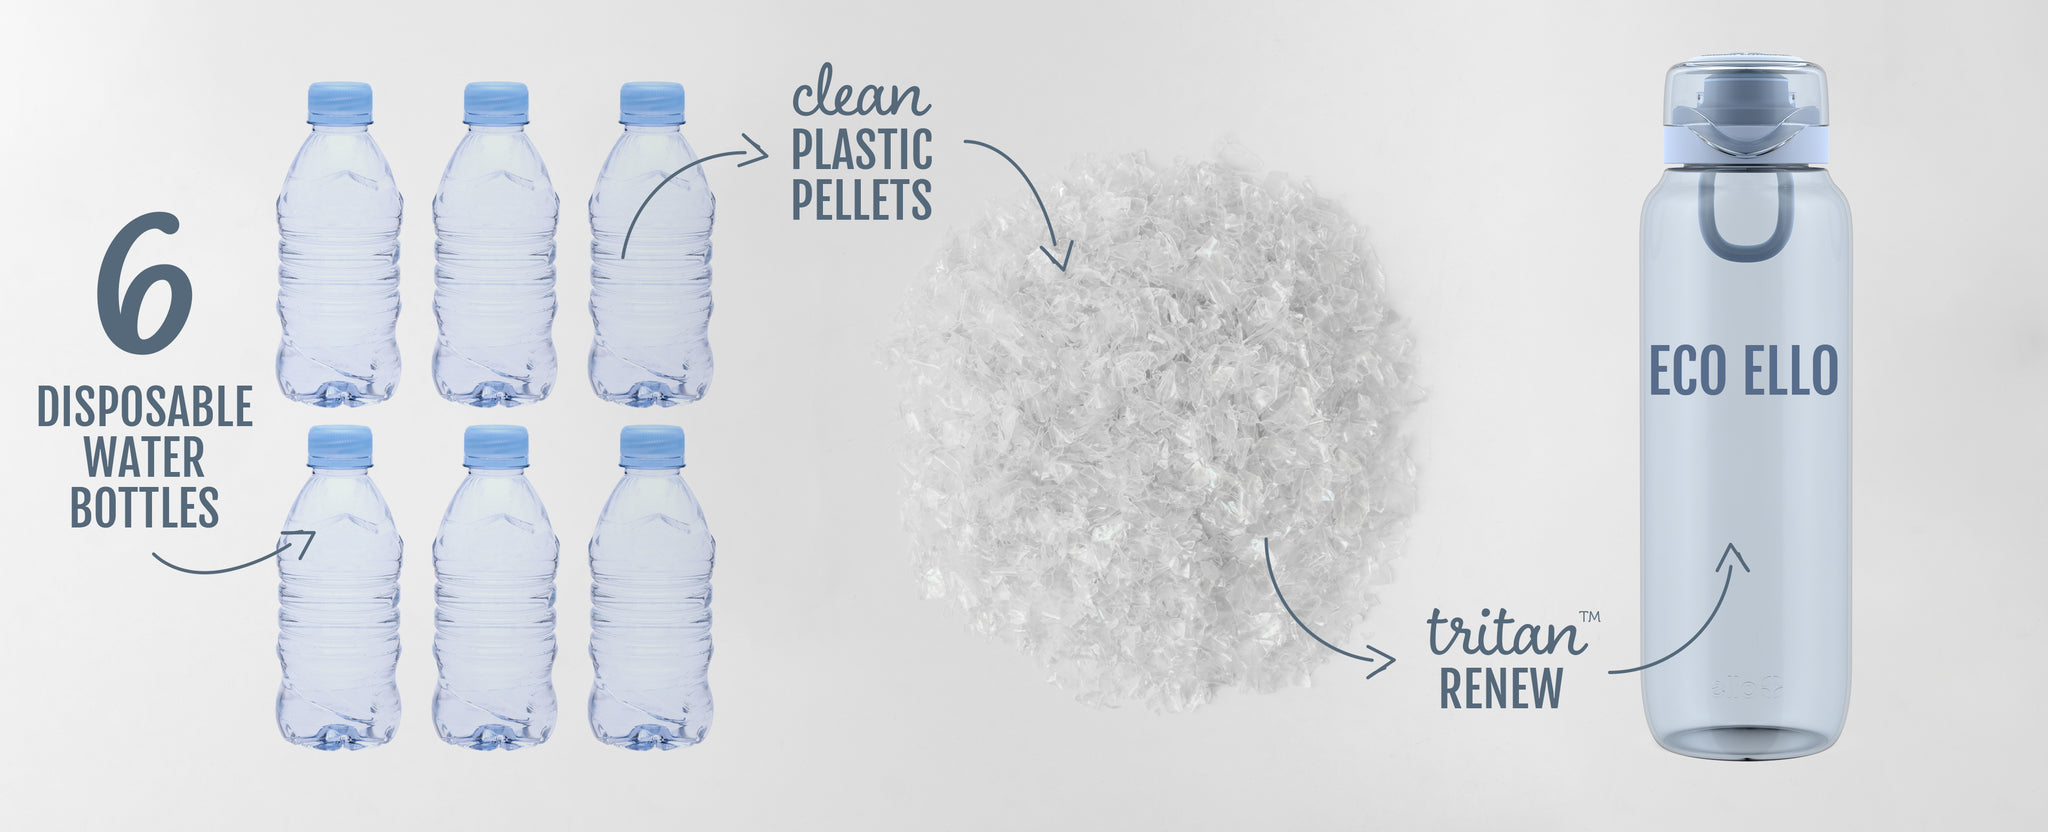 Eco Ello Water Bottles From Recycled Materials